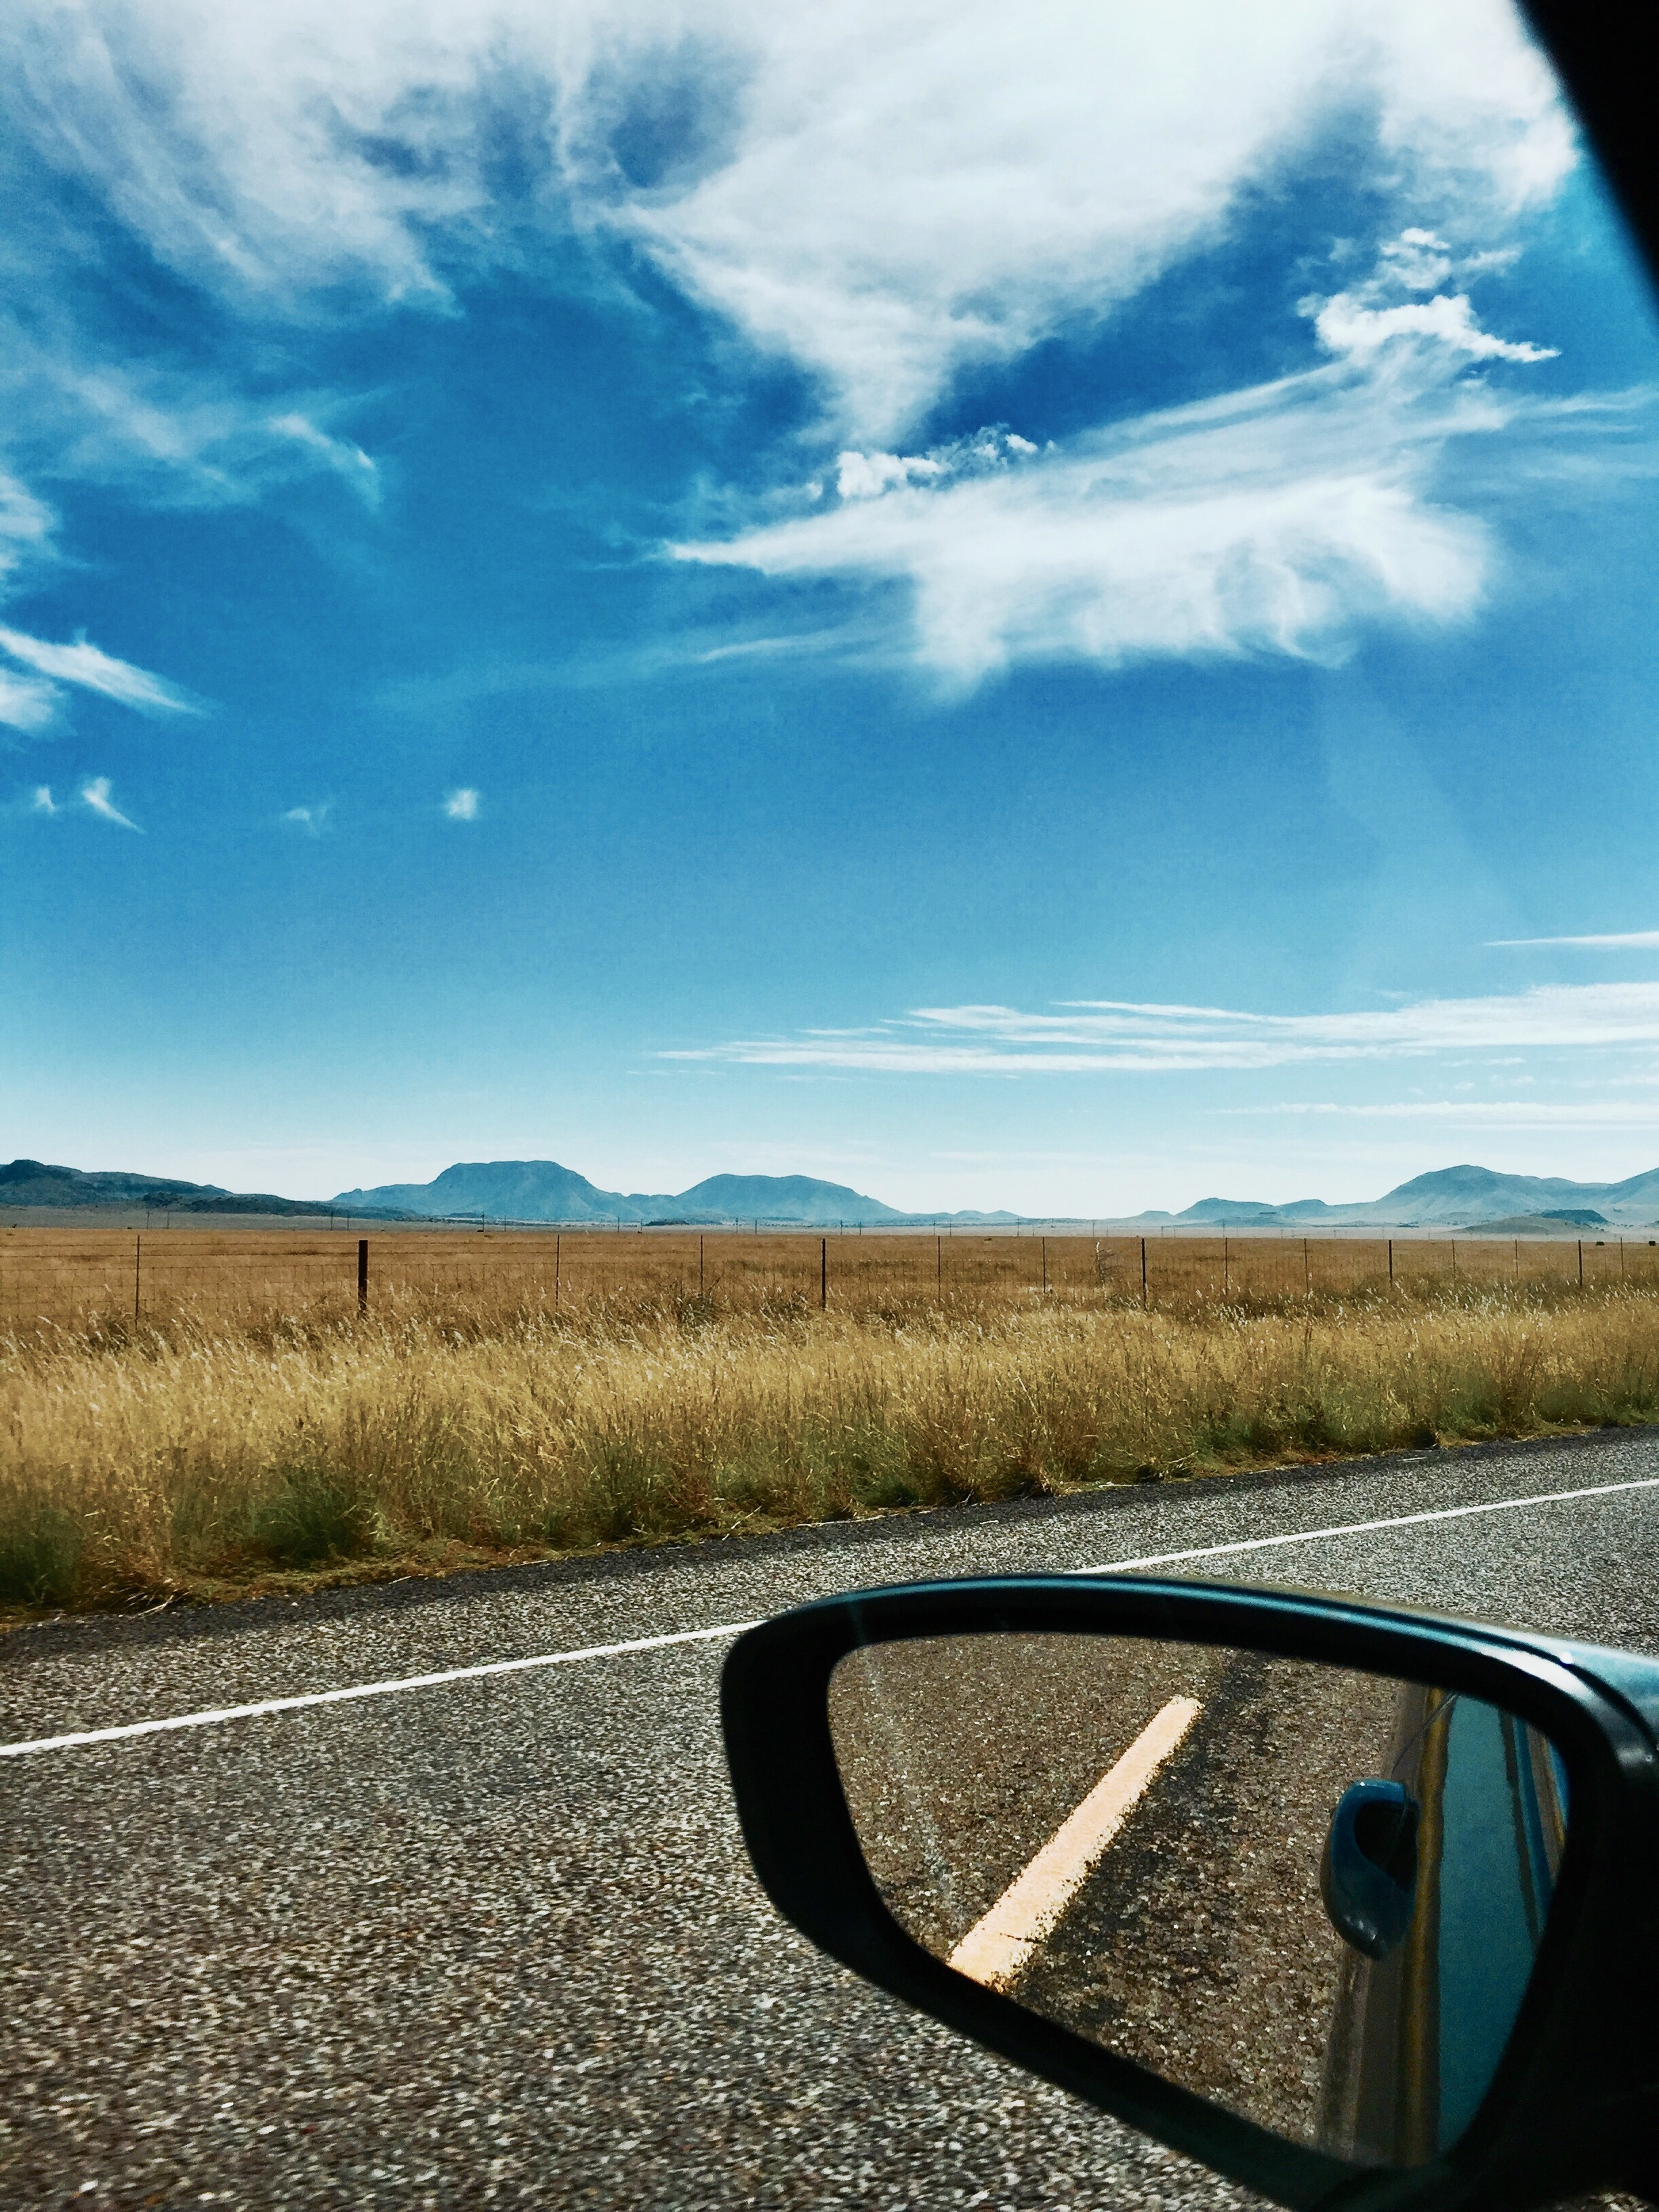 Enjoy the scenery along the open road!